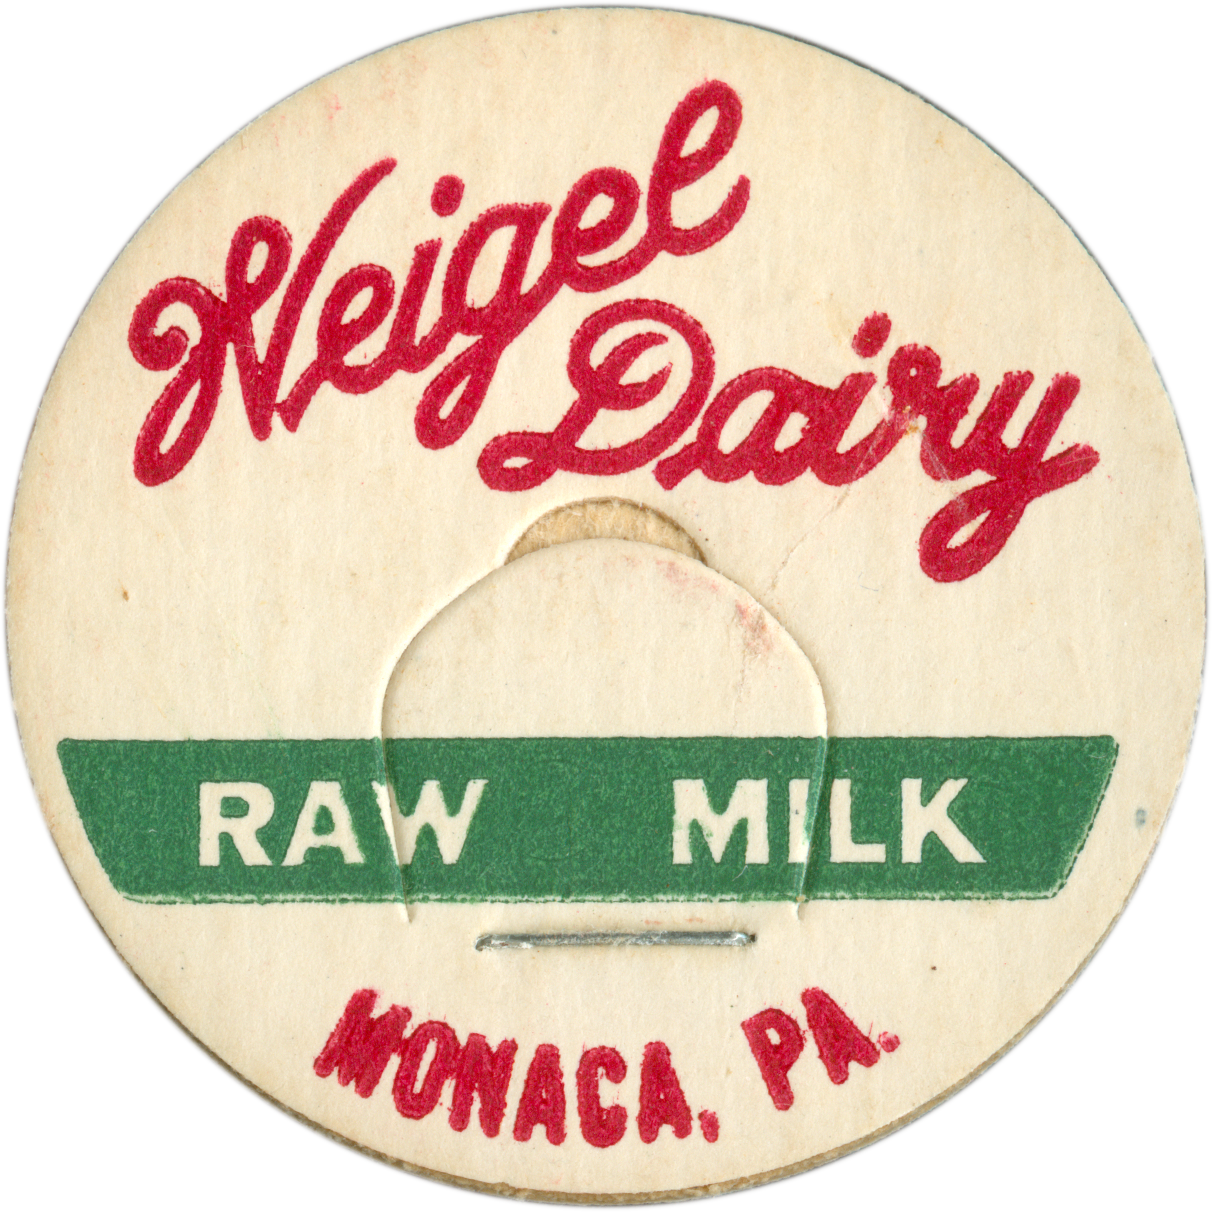 VernacularCircles__0001s_0023_Weigee-Dairy---Raw-Milk.png